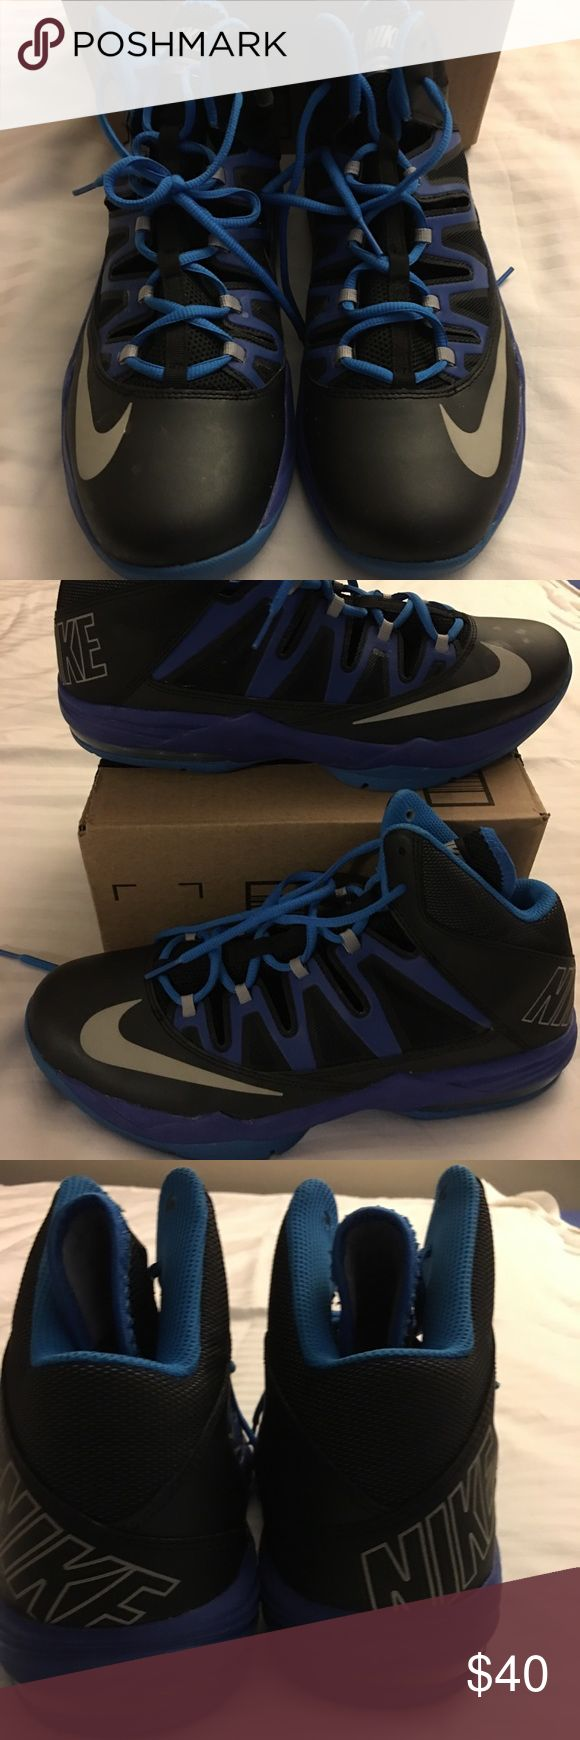 Nike Air Max Stutter Step sneakers size US 11 Nike Black & Blue Air Max Stutter Step Men Basketball 🏀 sneakers, slightly worn Nike Shoes Sneakers